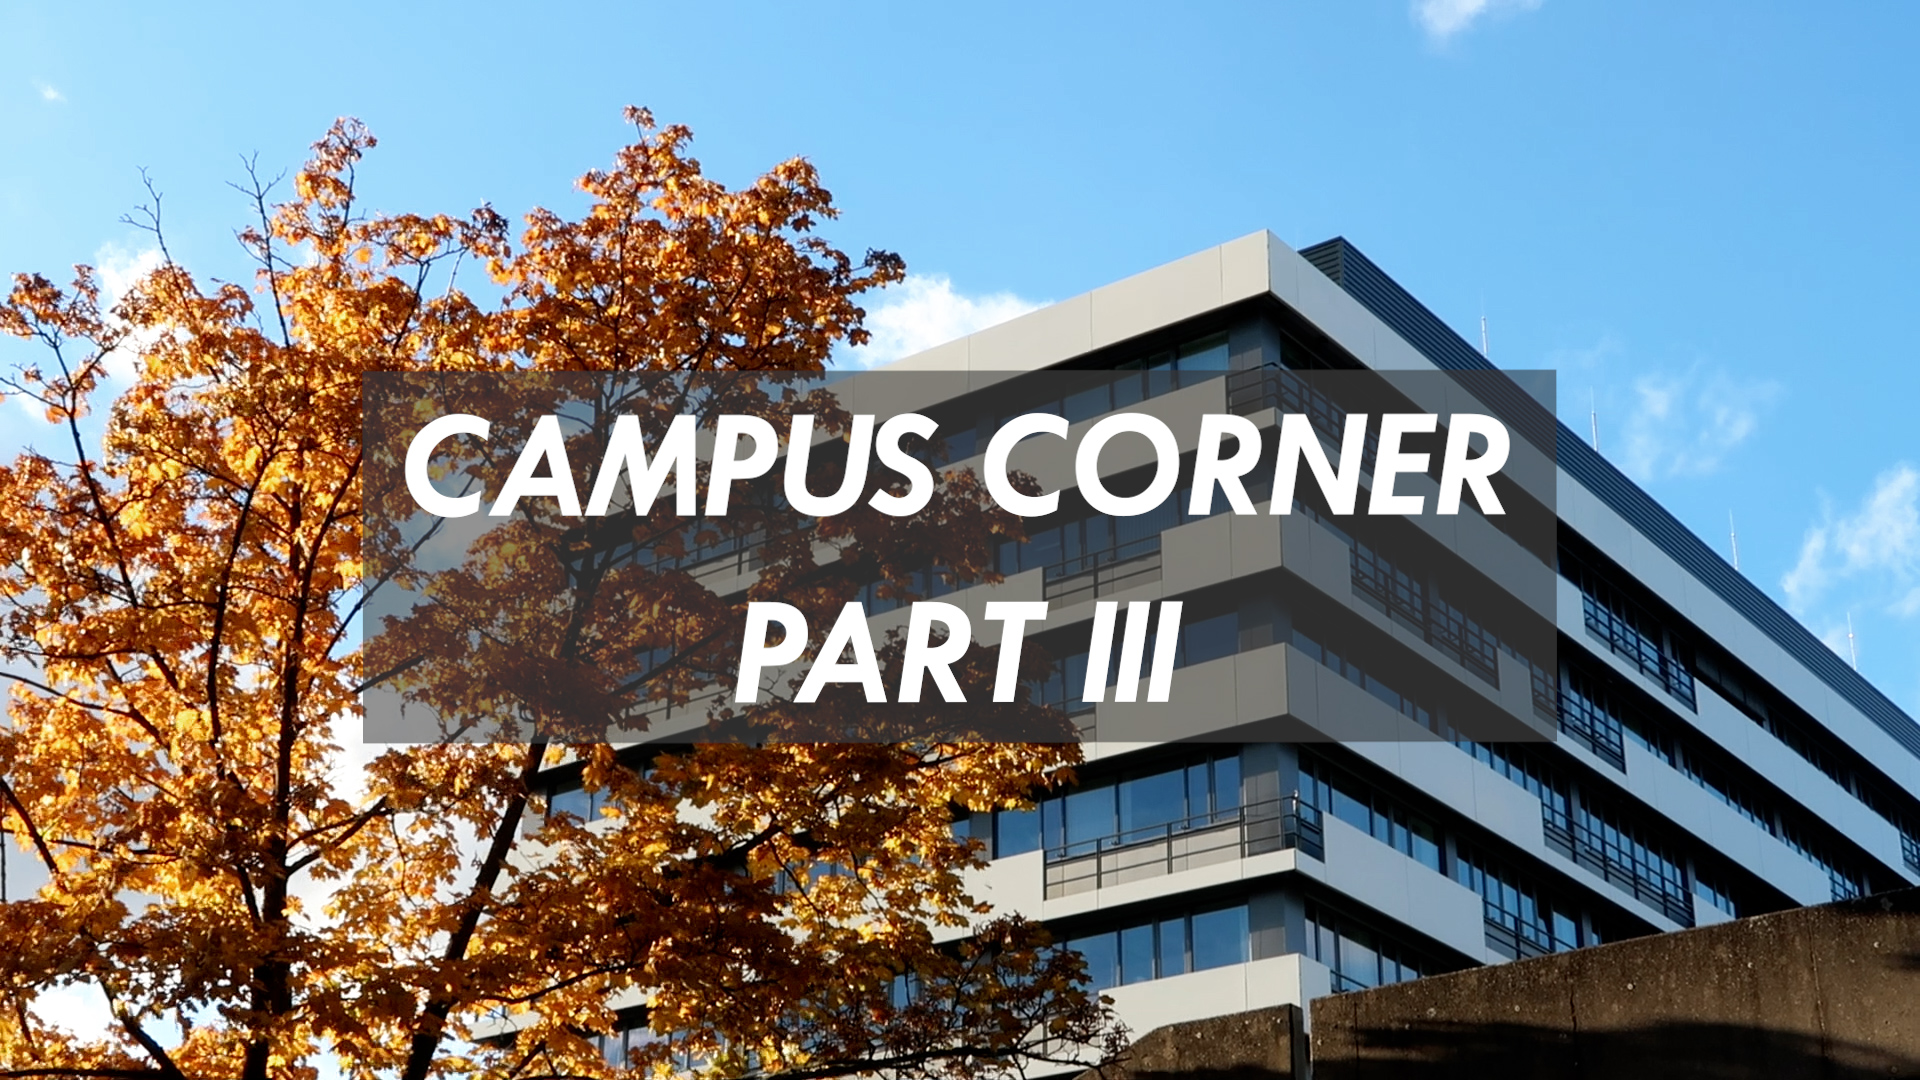 campus-corner-part-iii-now-online